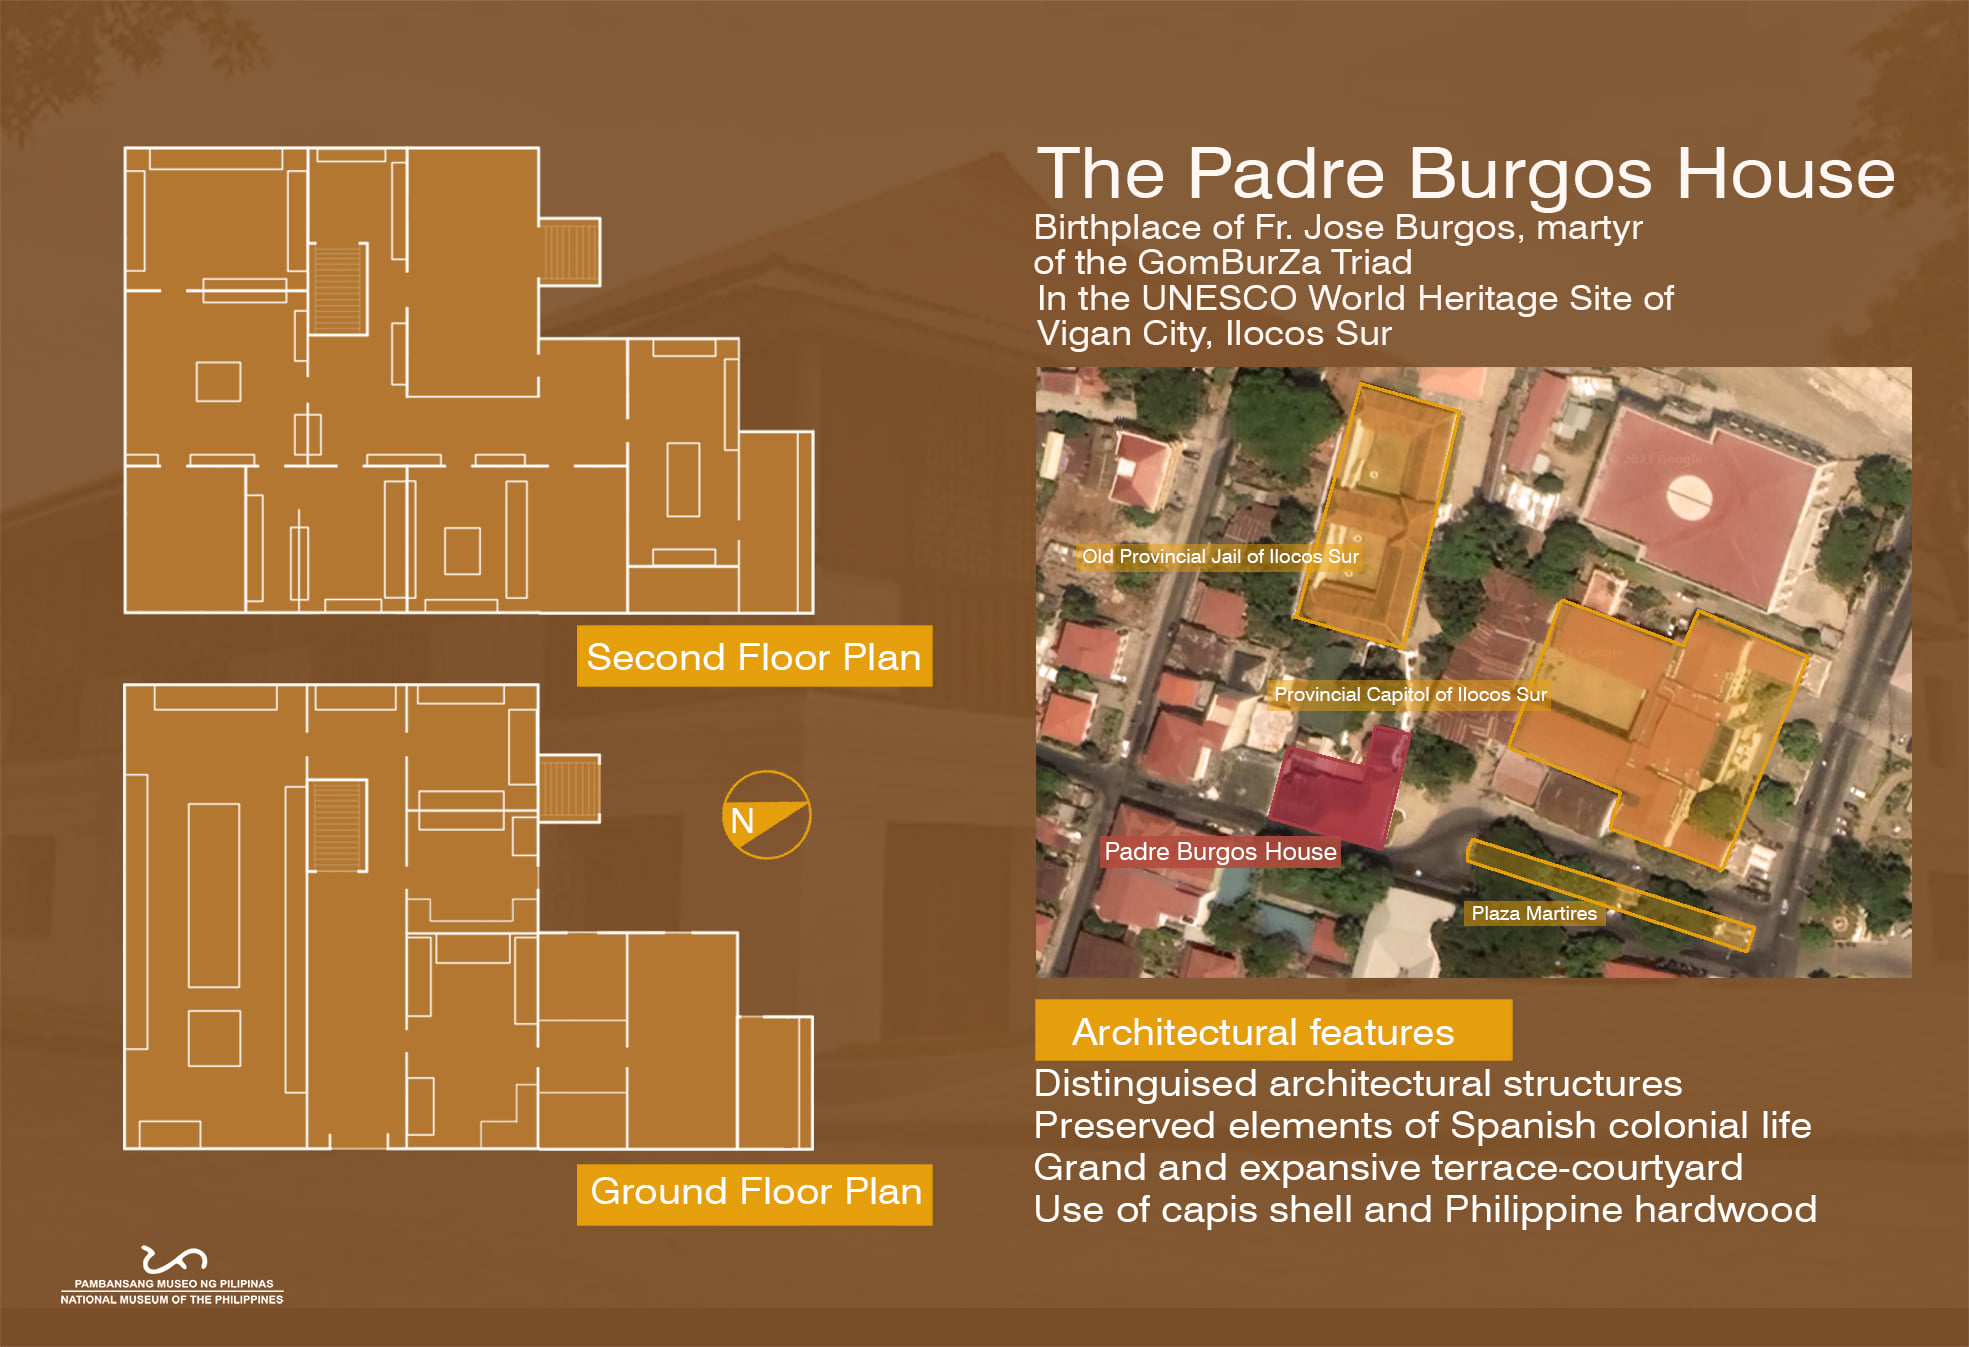 Exterior view of the Padre Burgos House and Upper Floor Plan (A. Arciaga III, NMP AABHD)